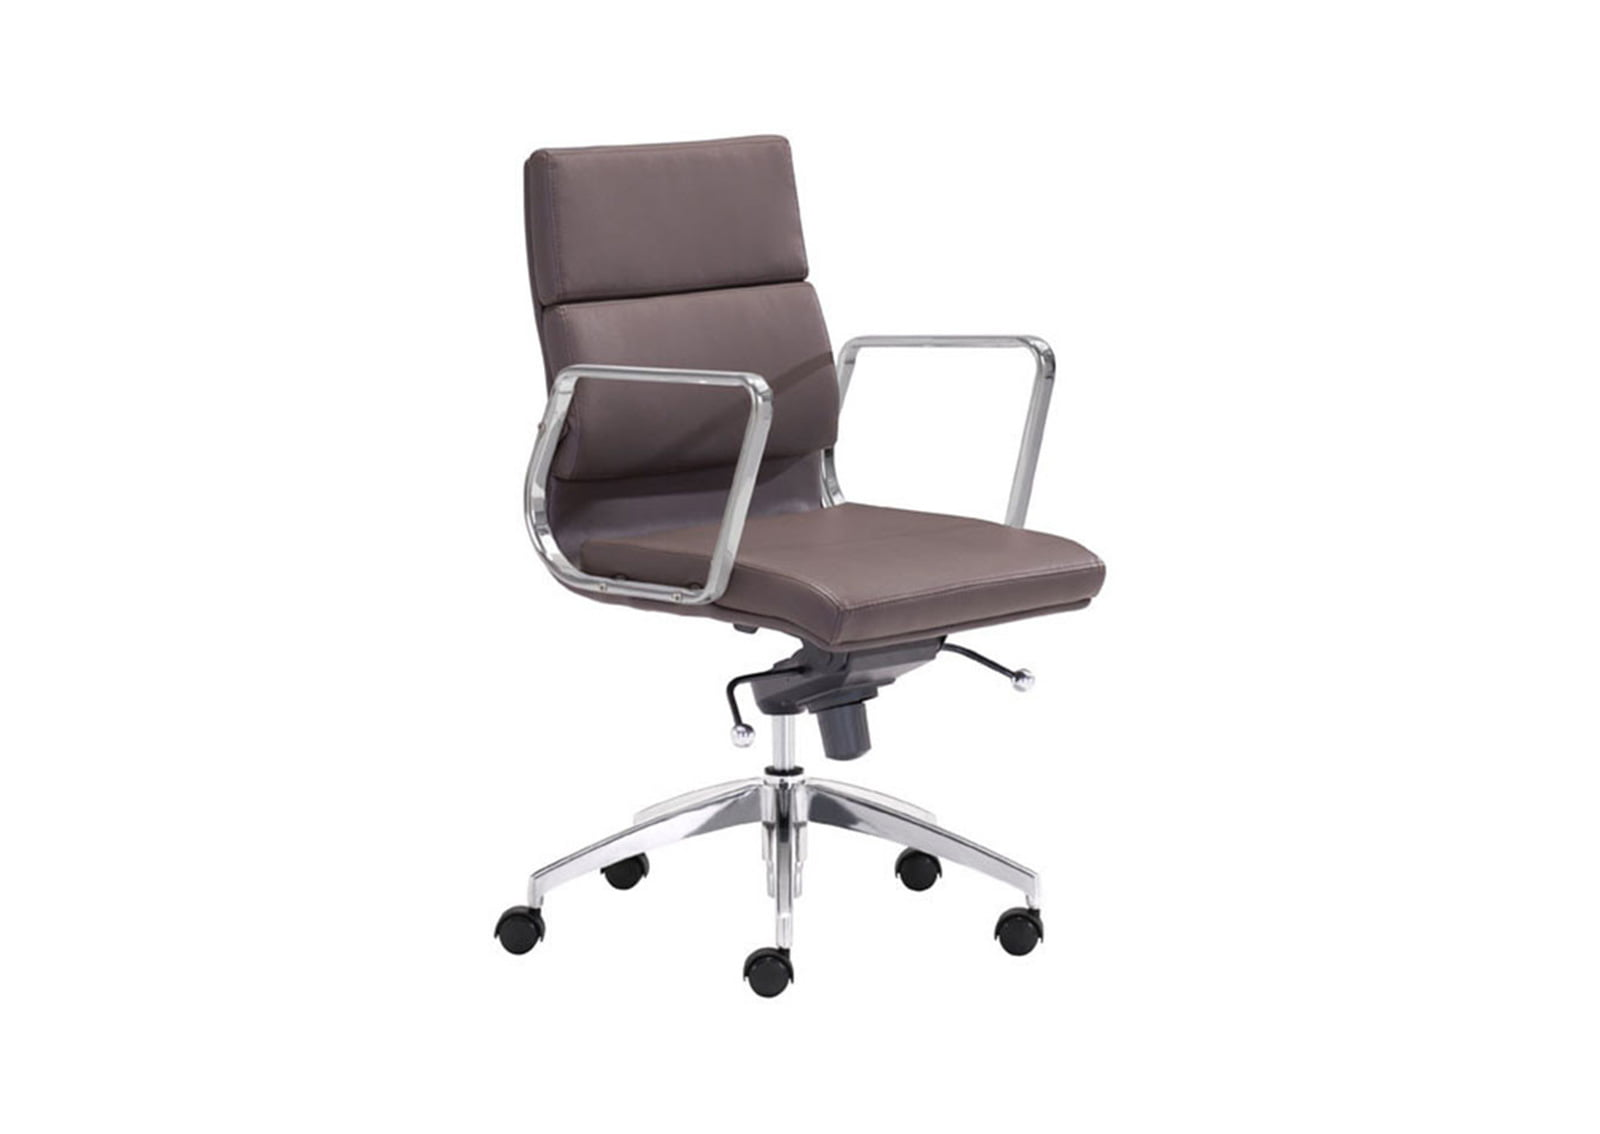 Engineer-Low-Back-Office-Chair-Espresso1